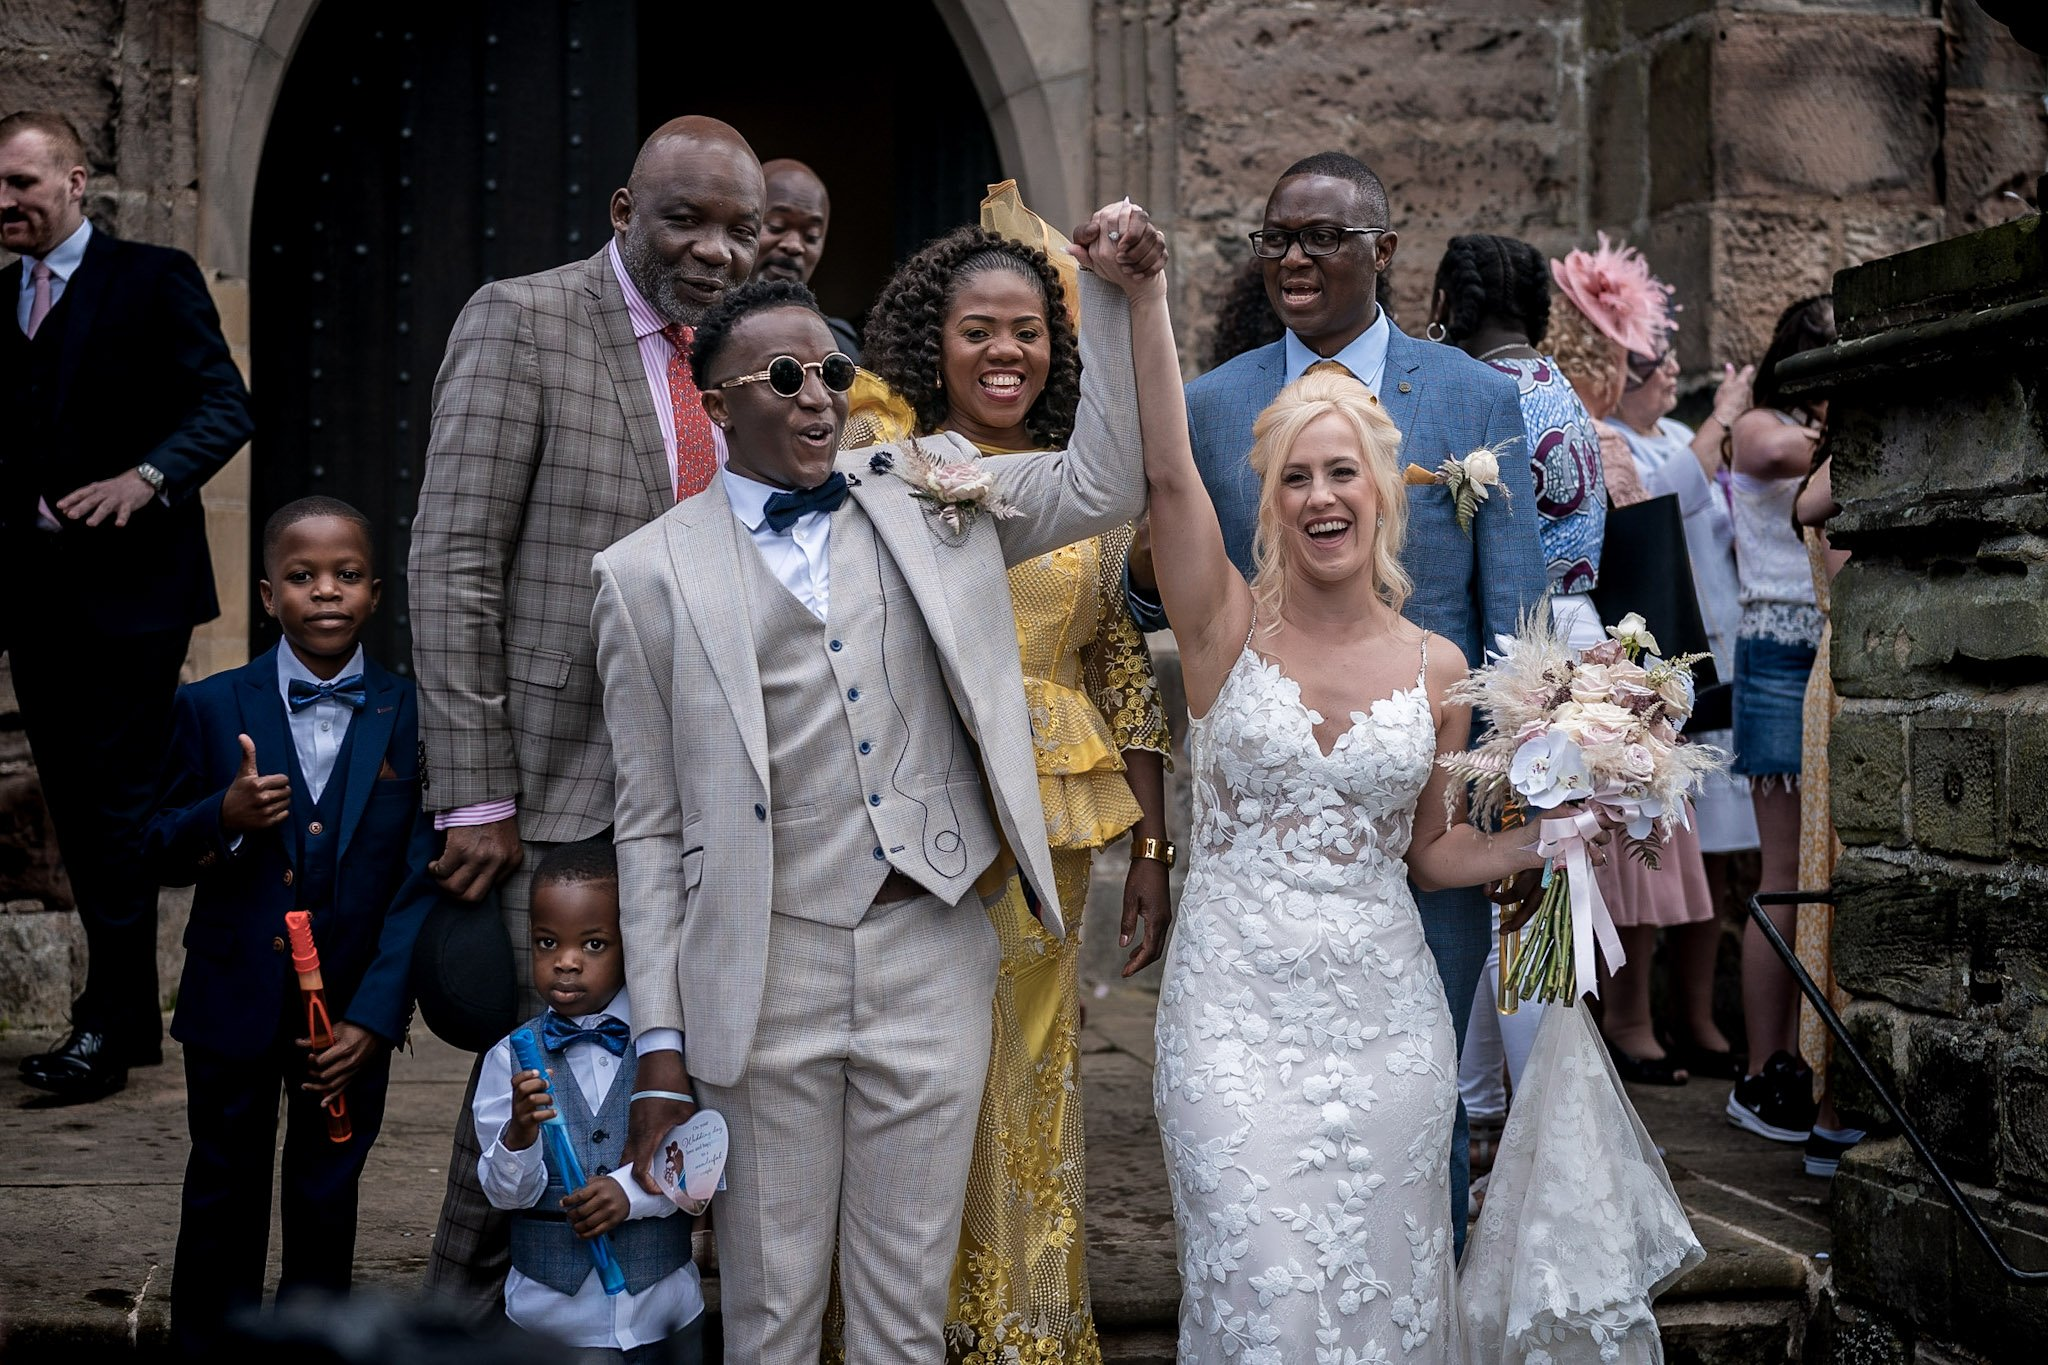 Your Favourite Frame YFFUK Mwasuku St Michaels Church Appleby Magna bride and groom on the front steps of the church arms aloft in celebration